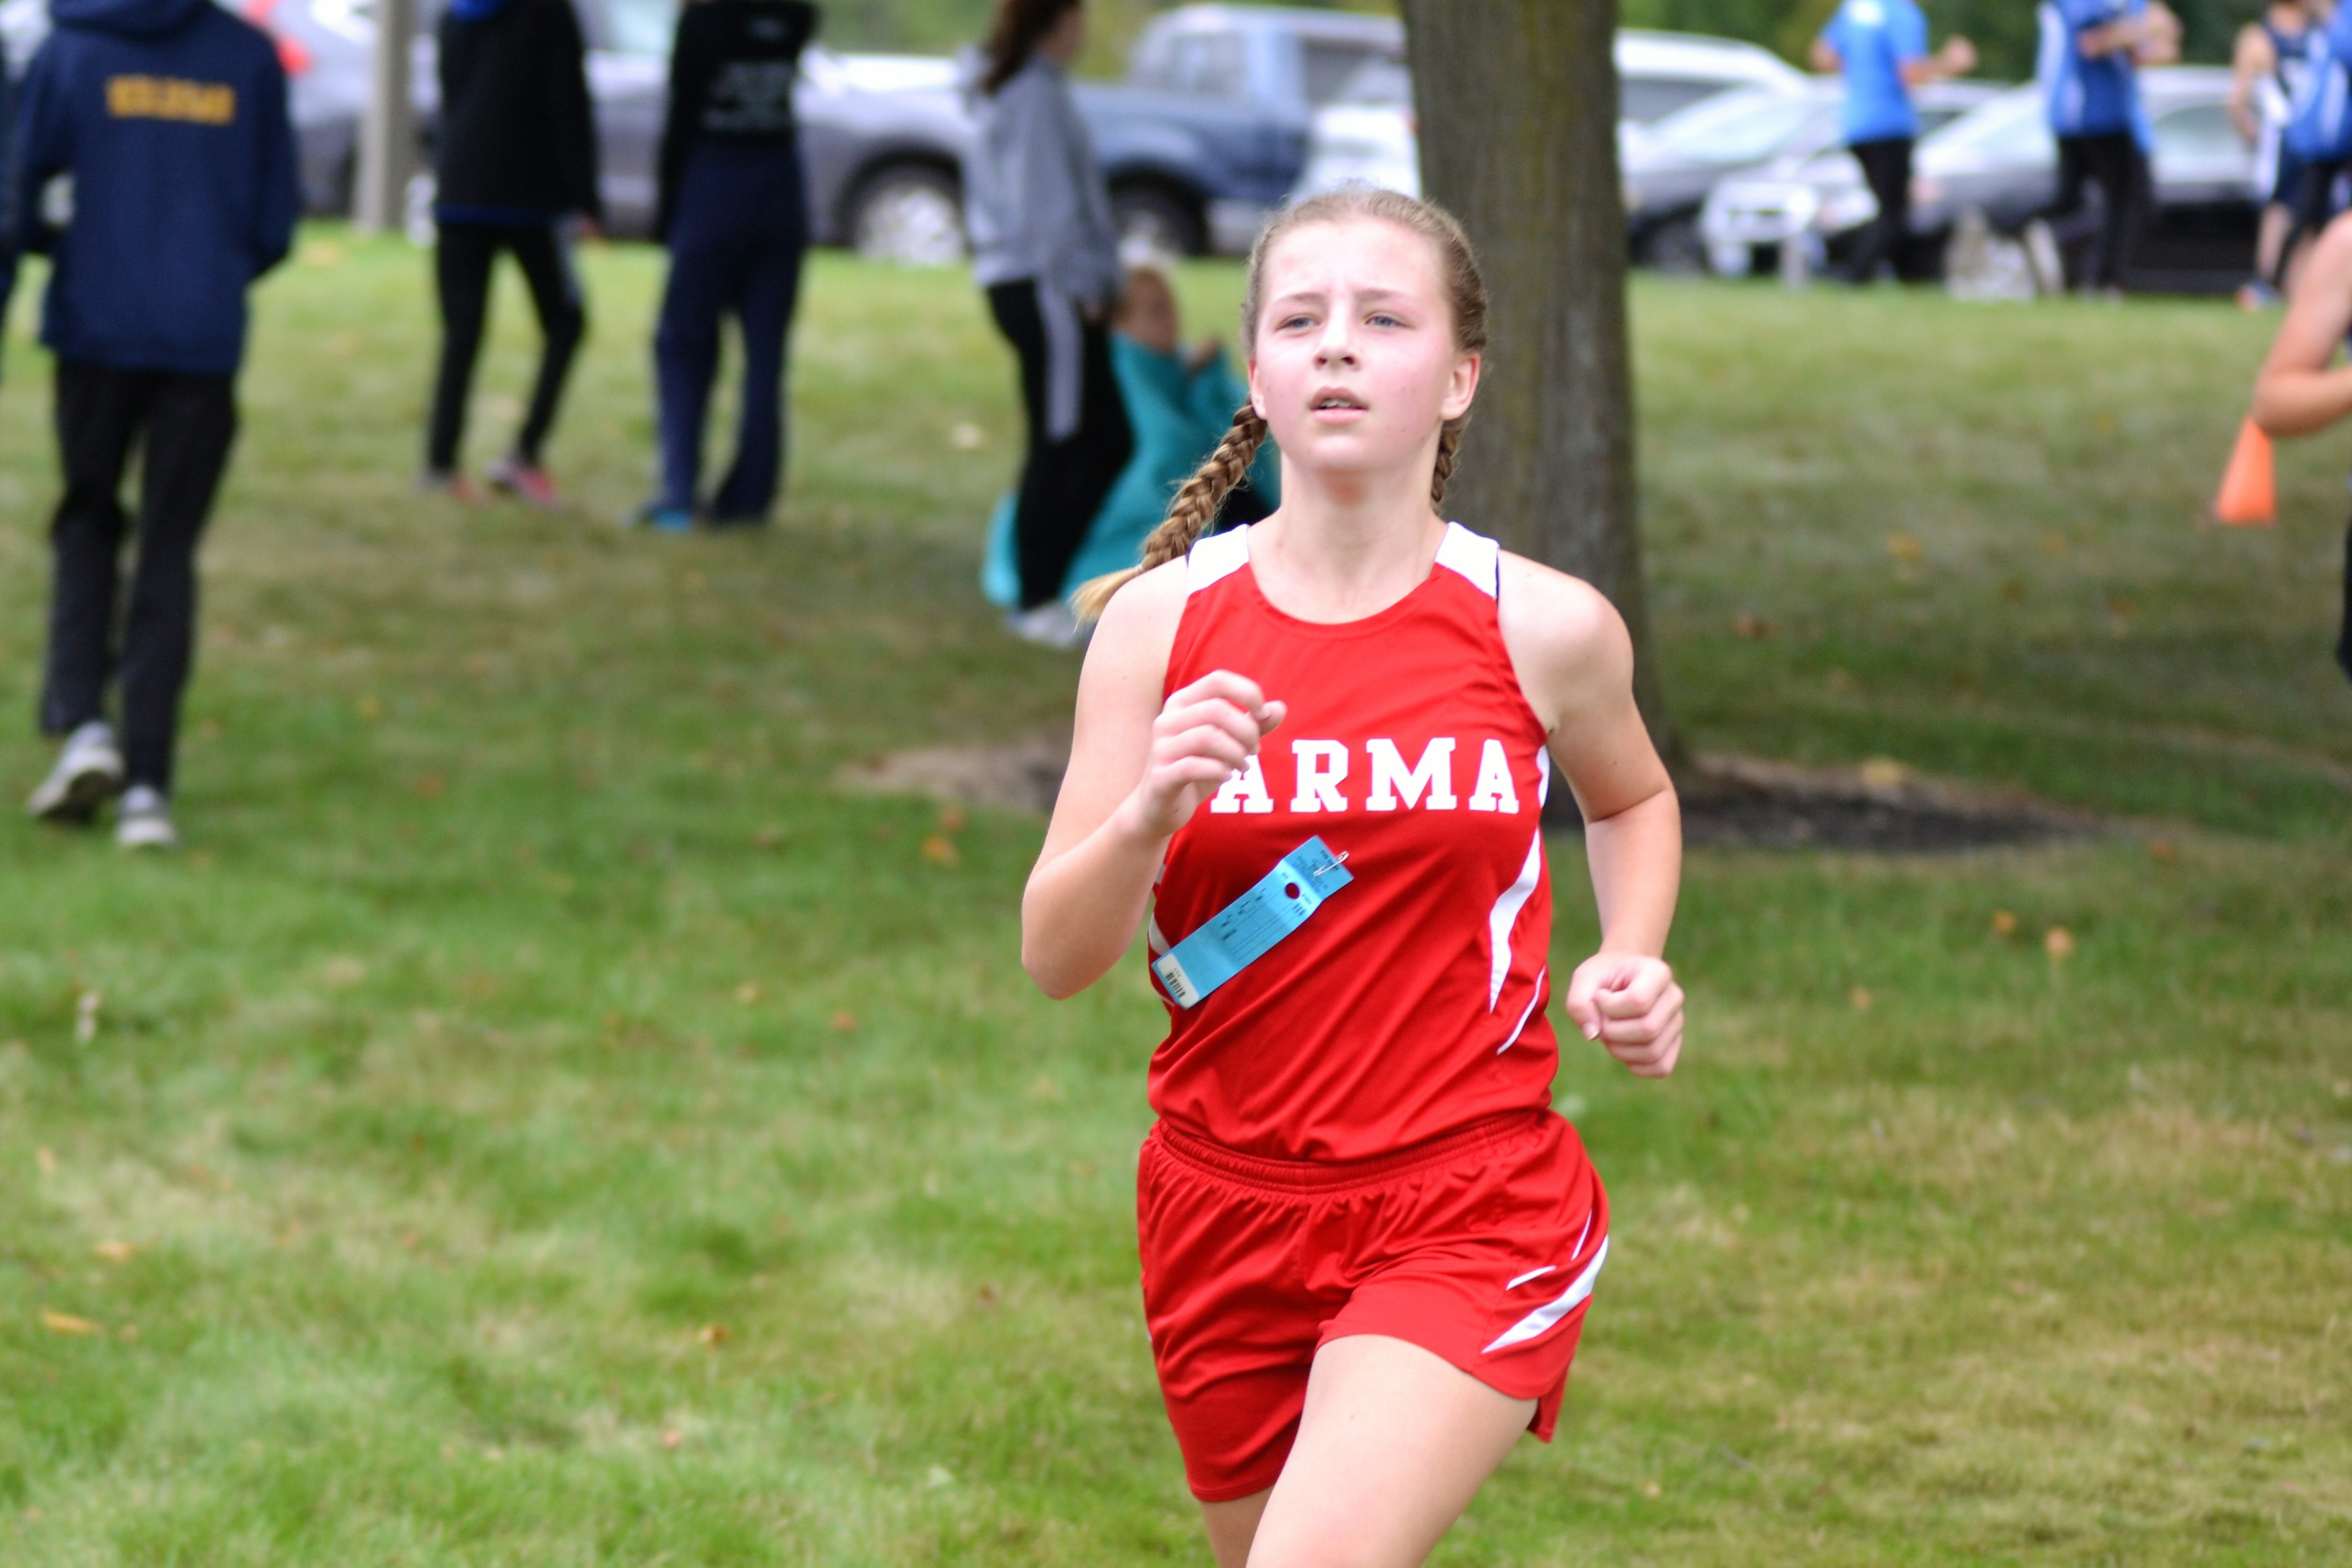 Pics of Redmen Cross Country at the Patriot Invitational